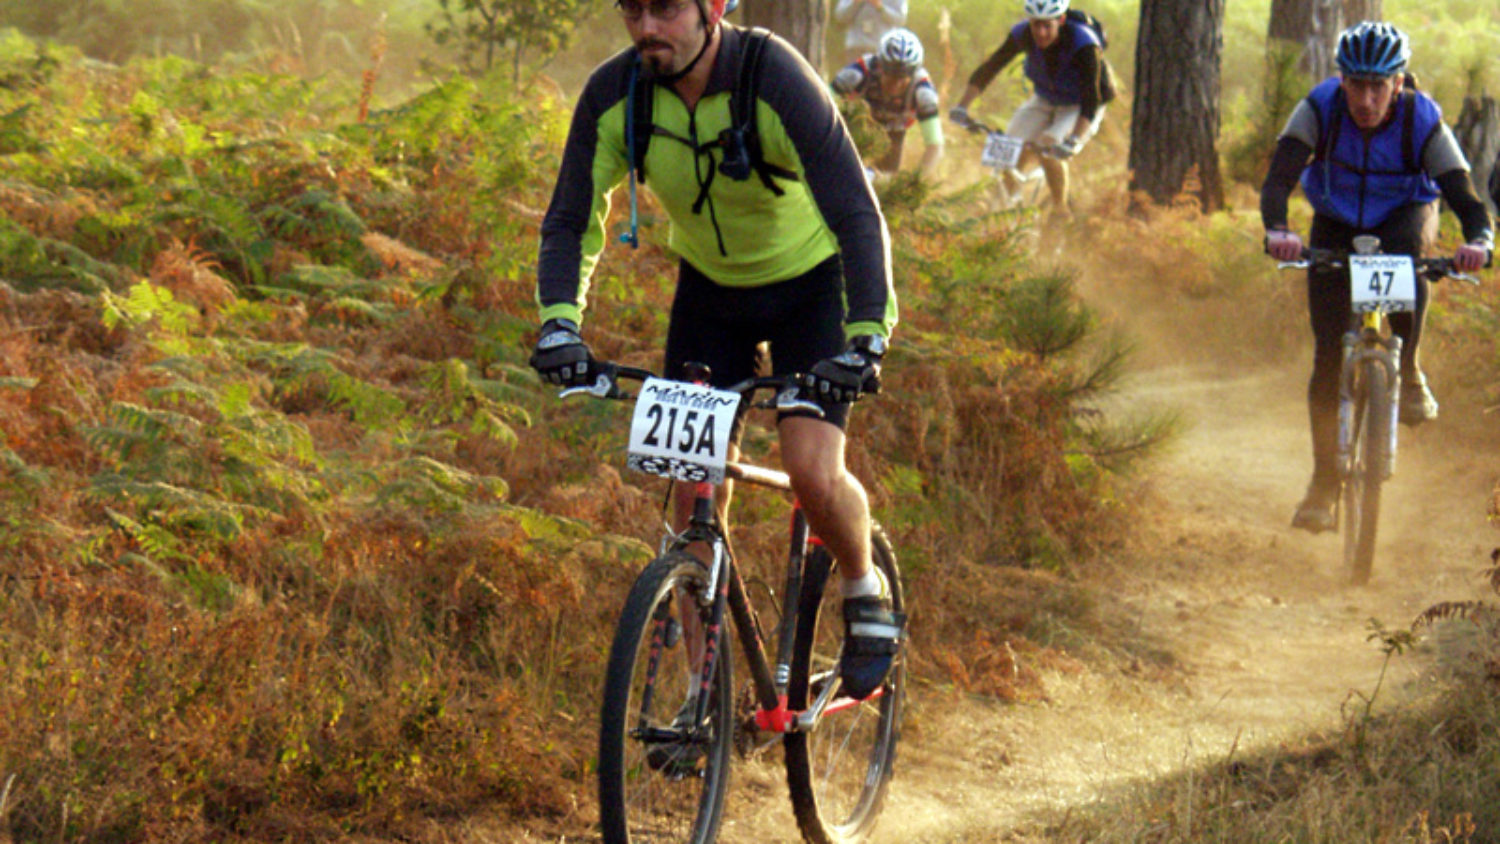 Abies Trail – Duathlon Off Road Experience